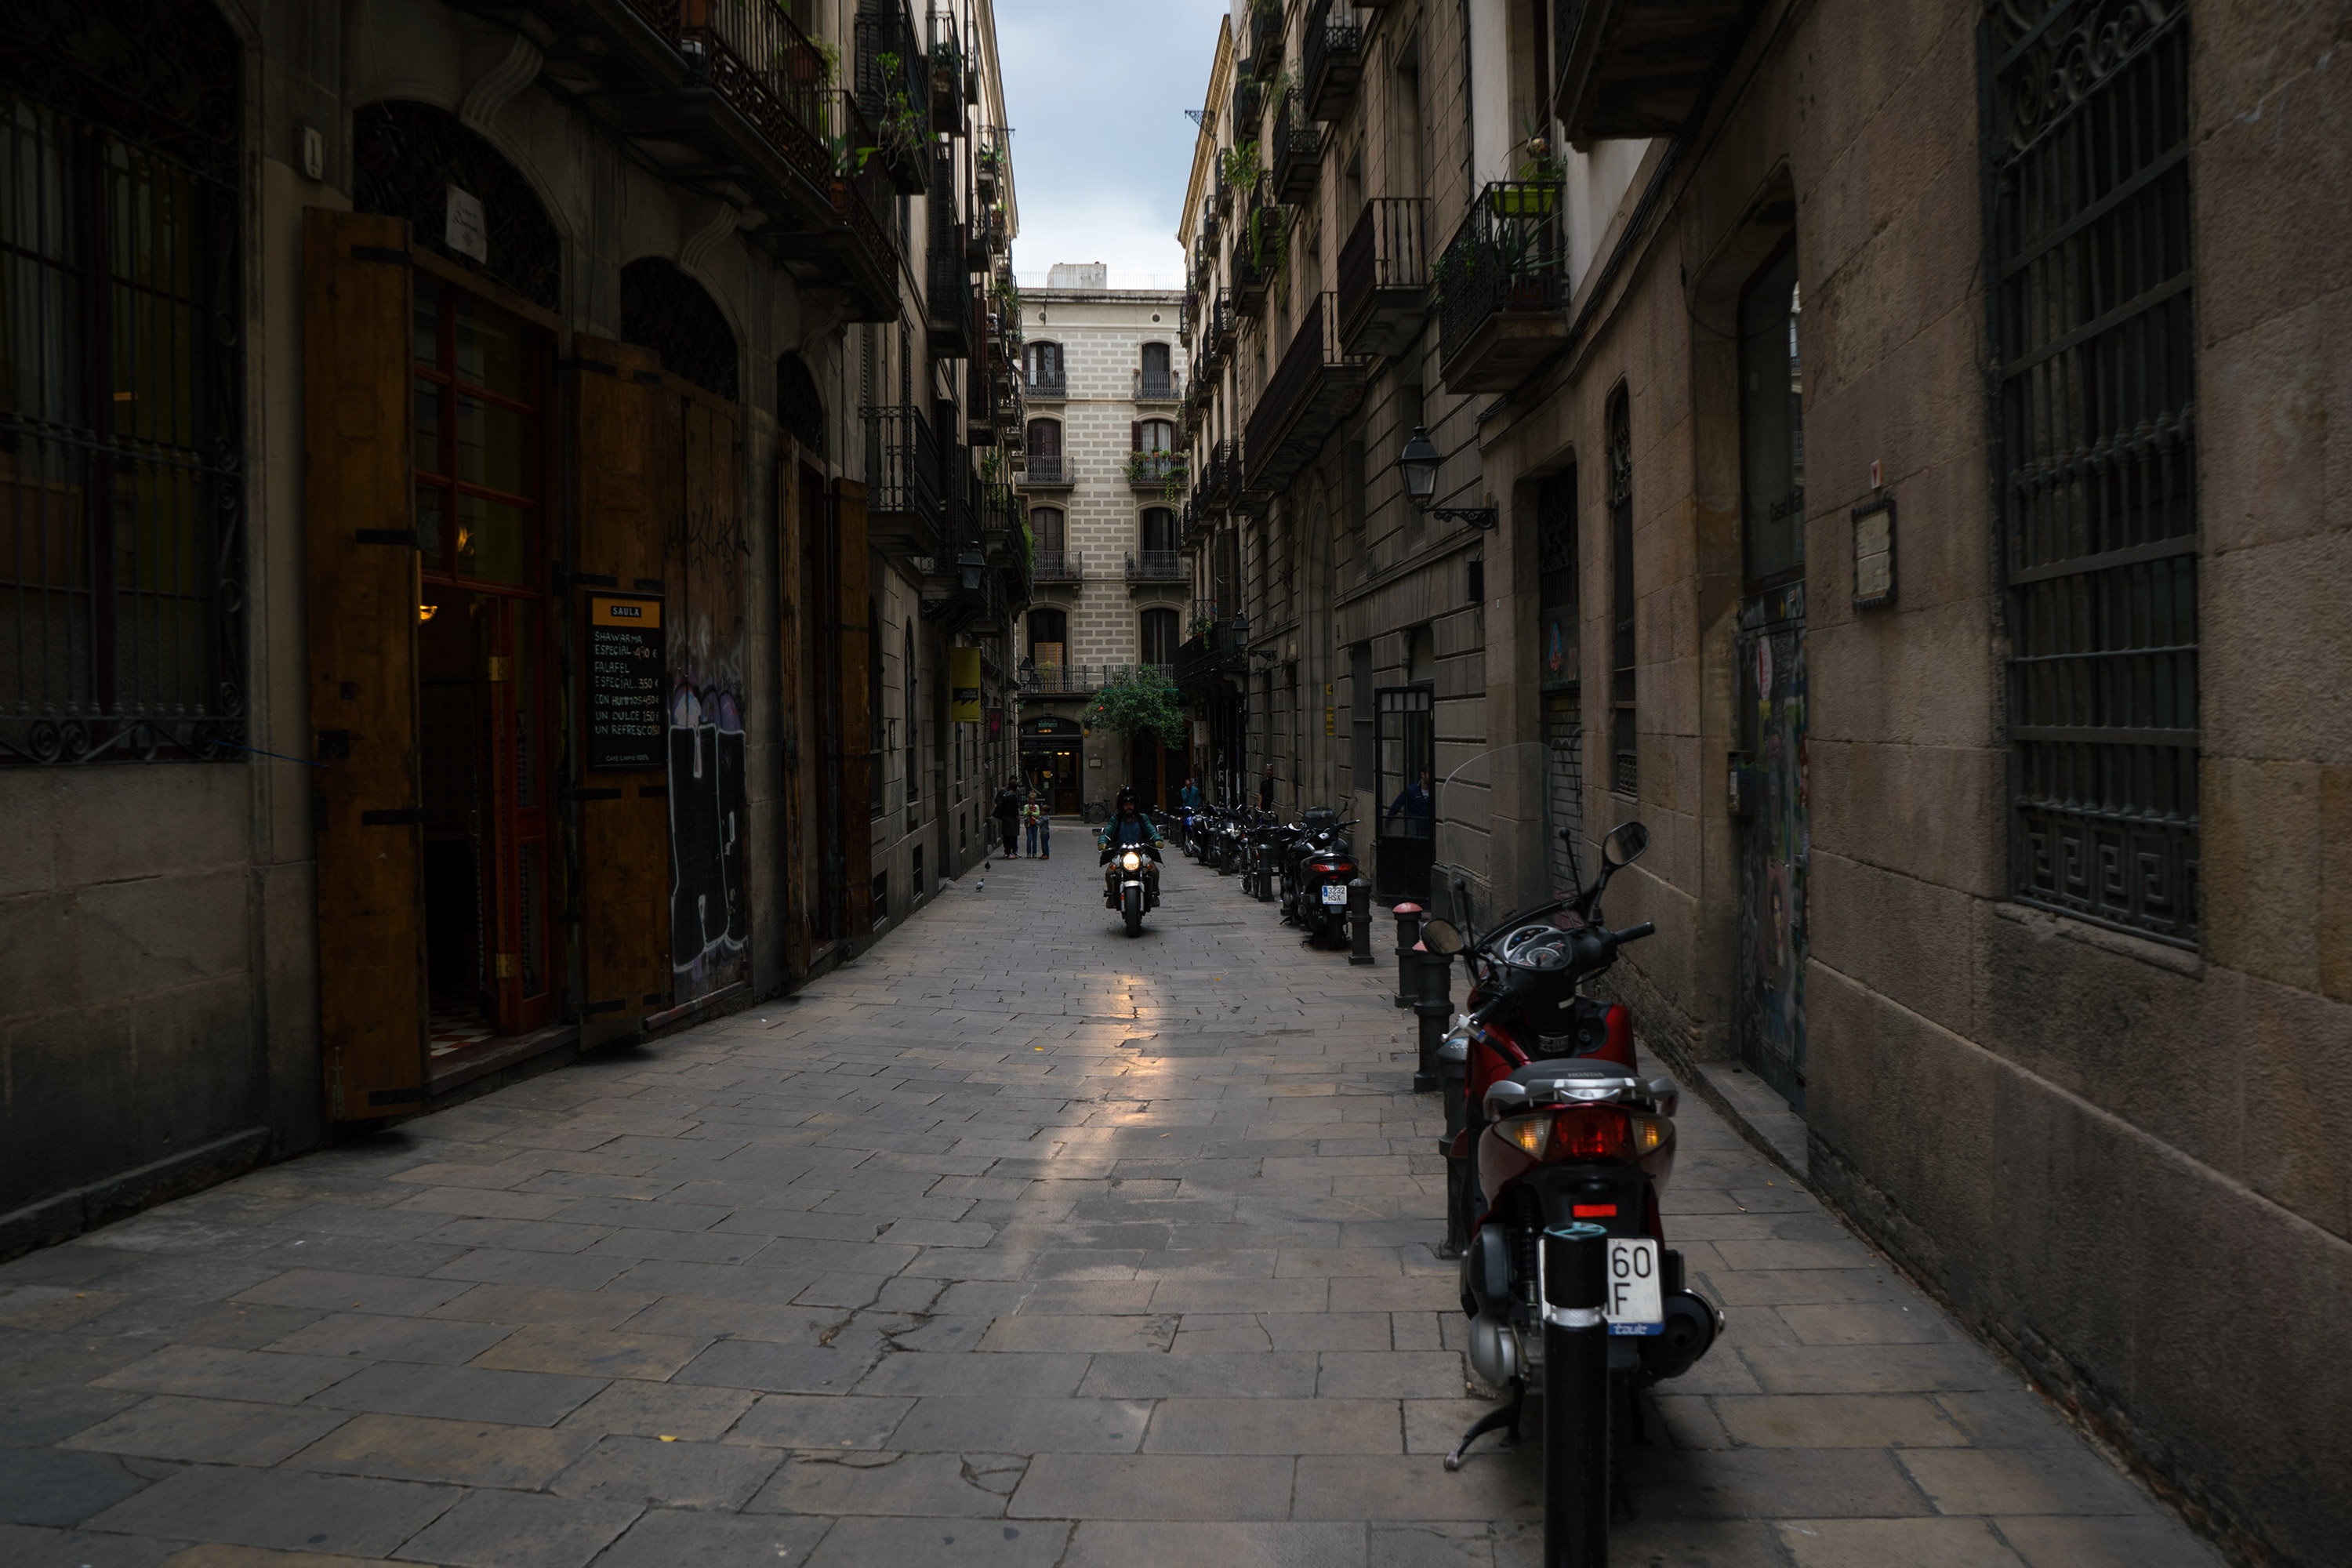 barcelona gothic quarter alley motorcycle